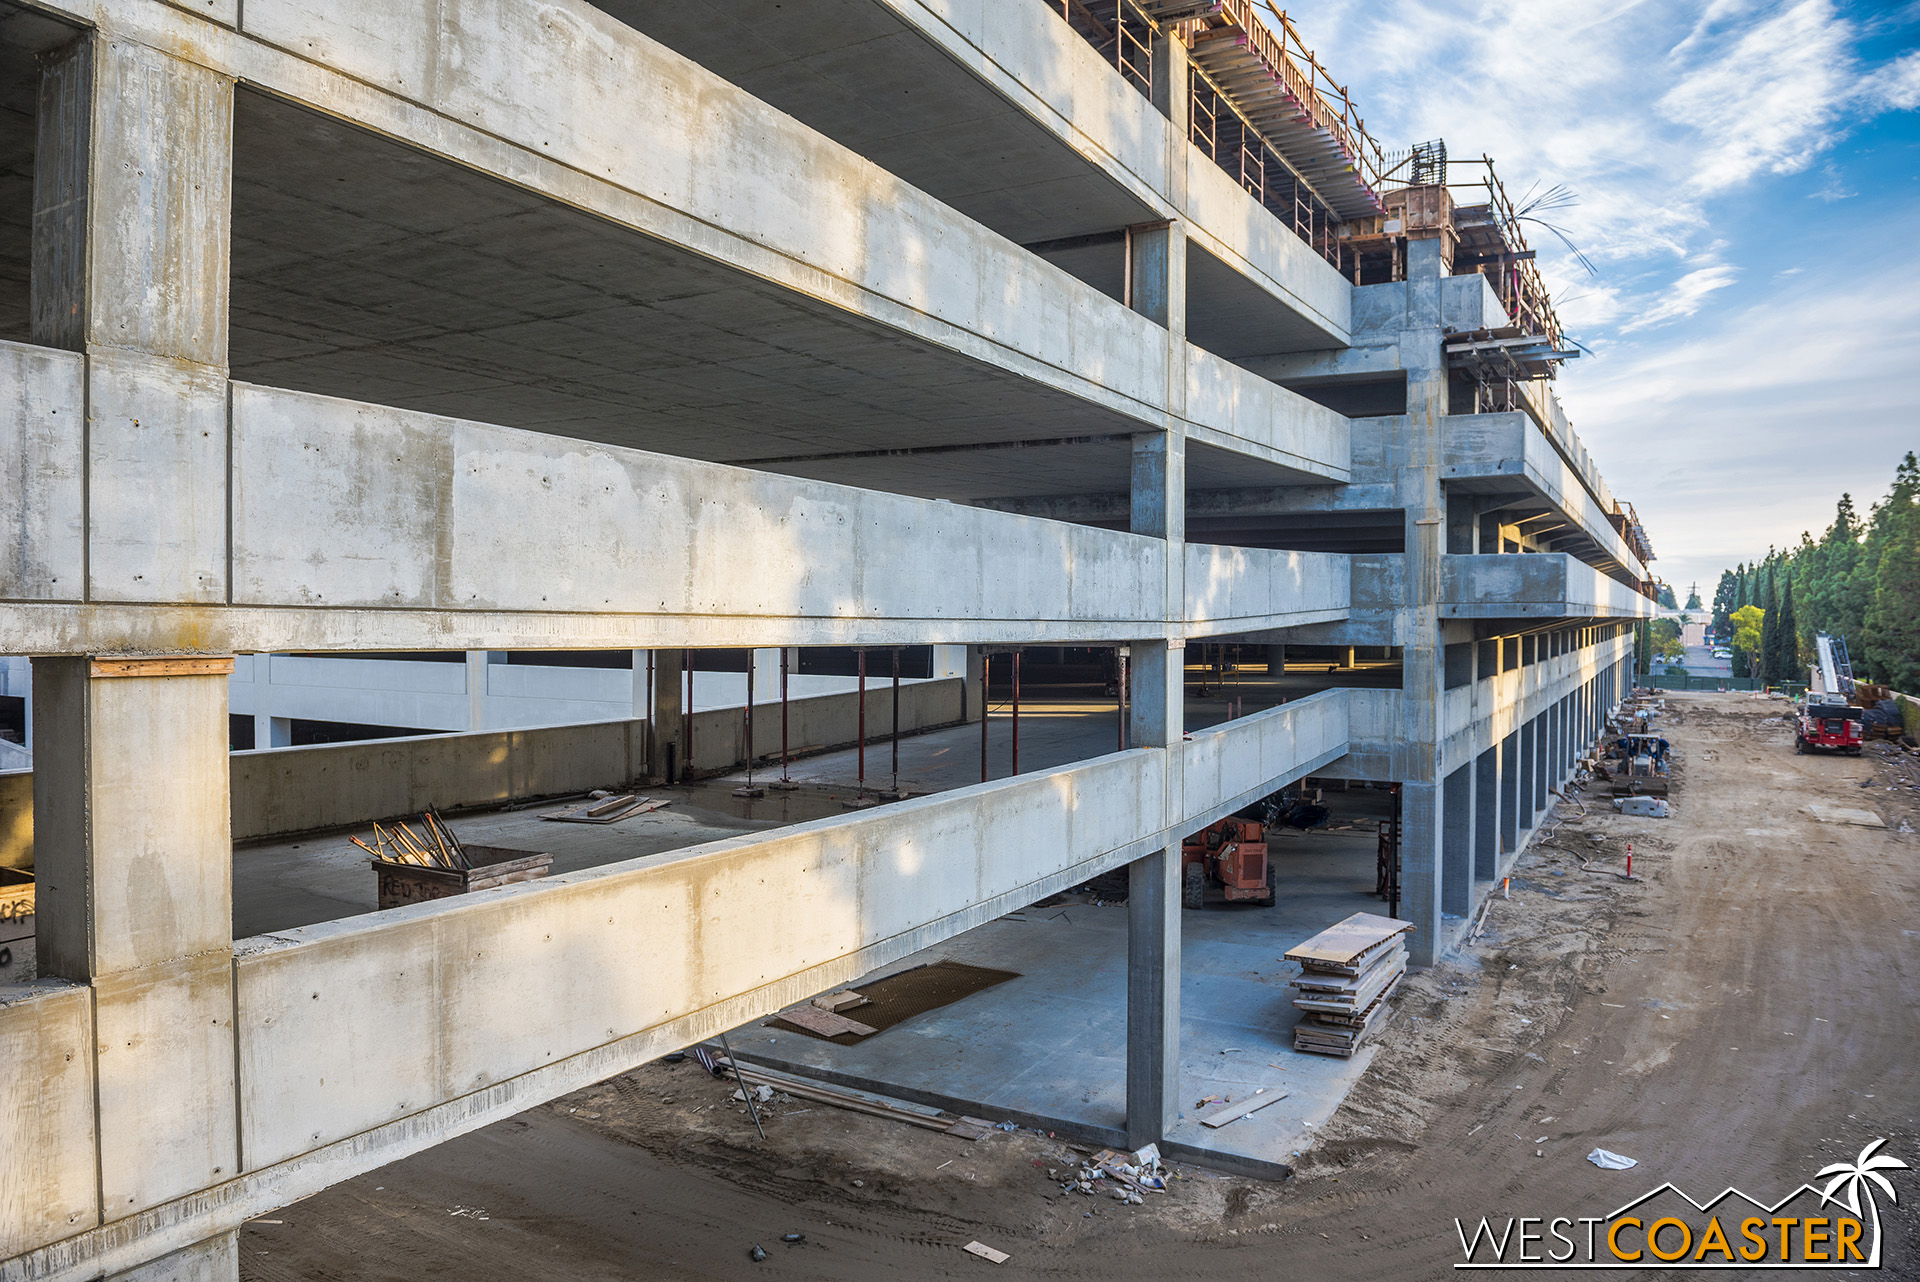 Looking out, we see this.  The west connector between old and new structure has progressed to the sixth floor.